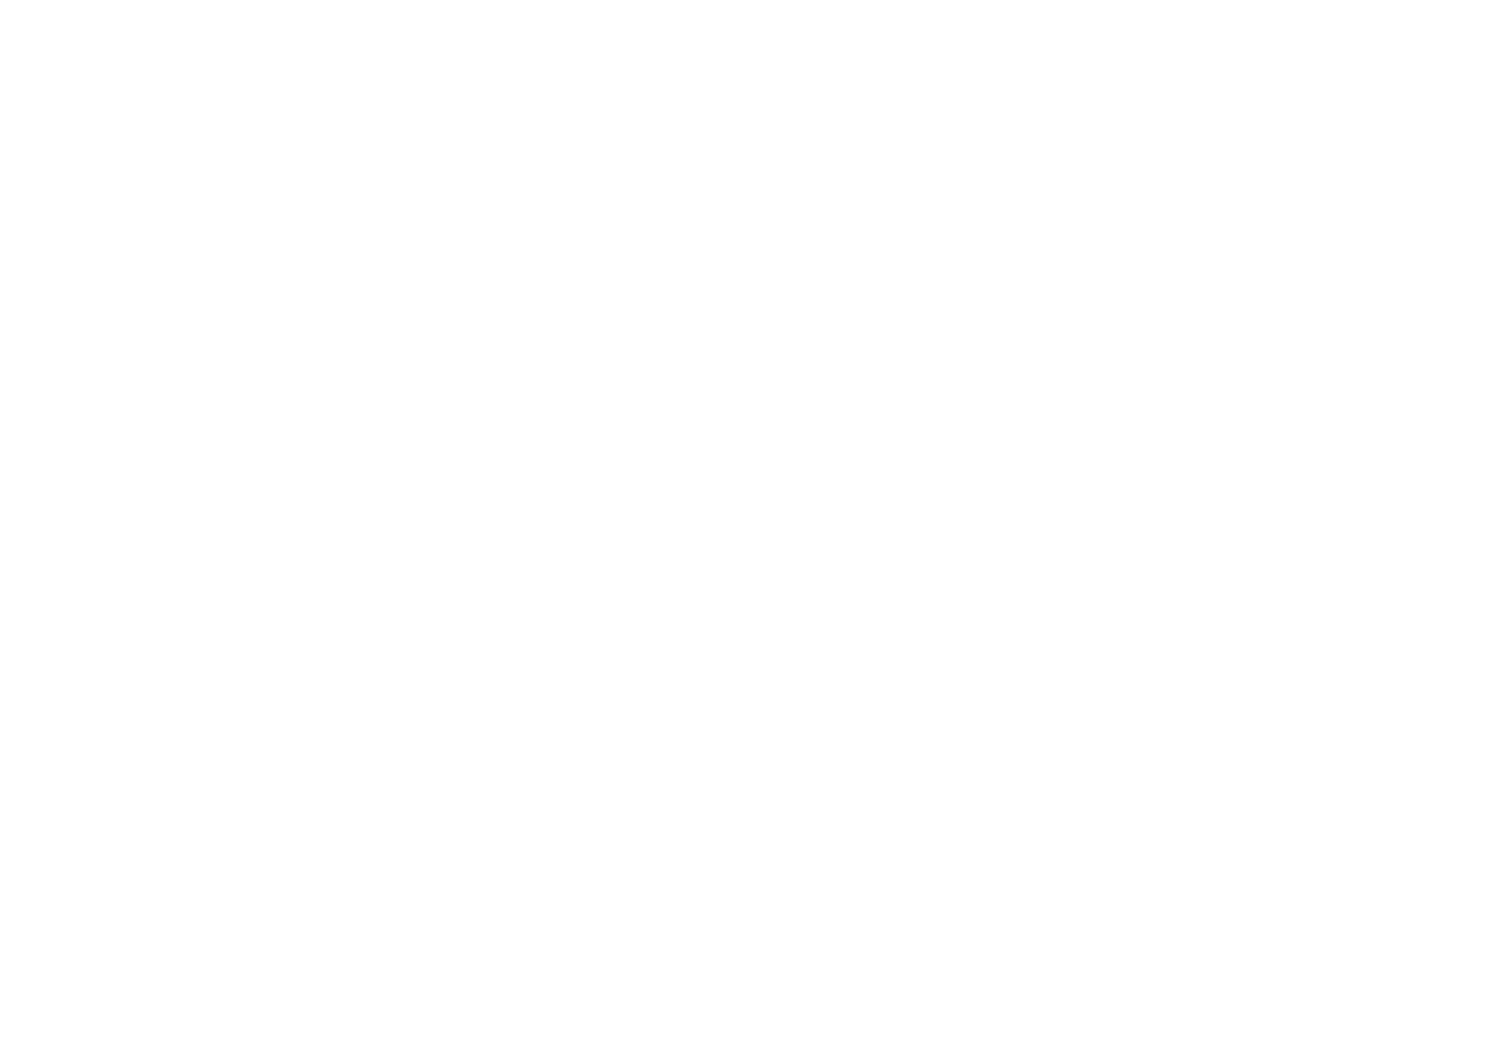 Holistic Health Group Canberra